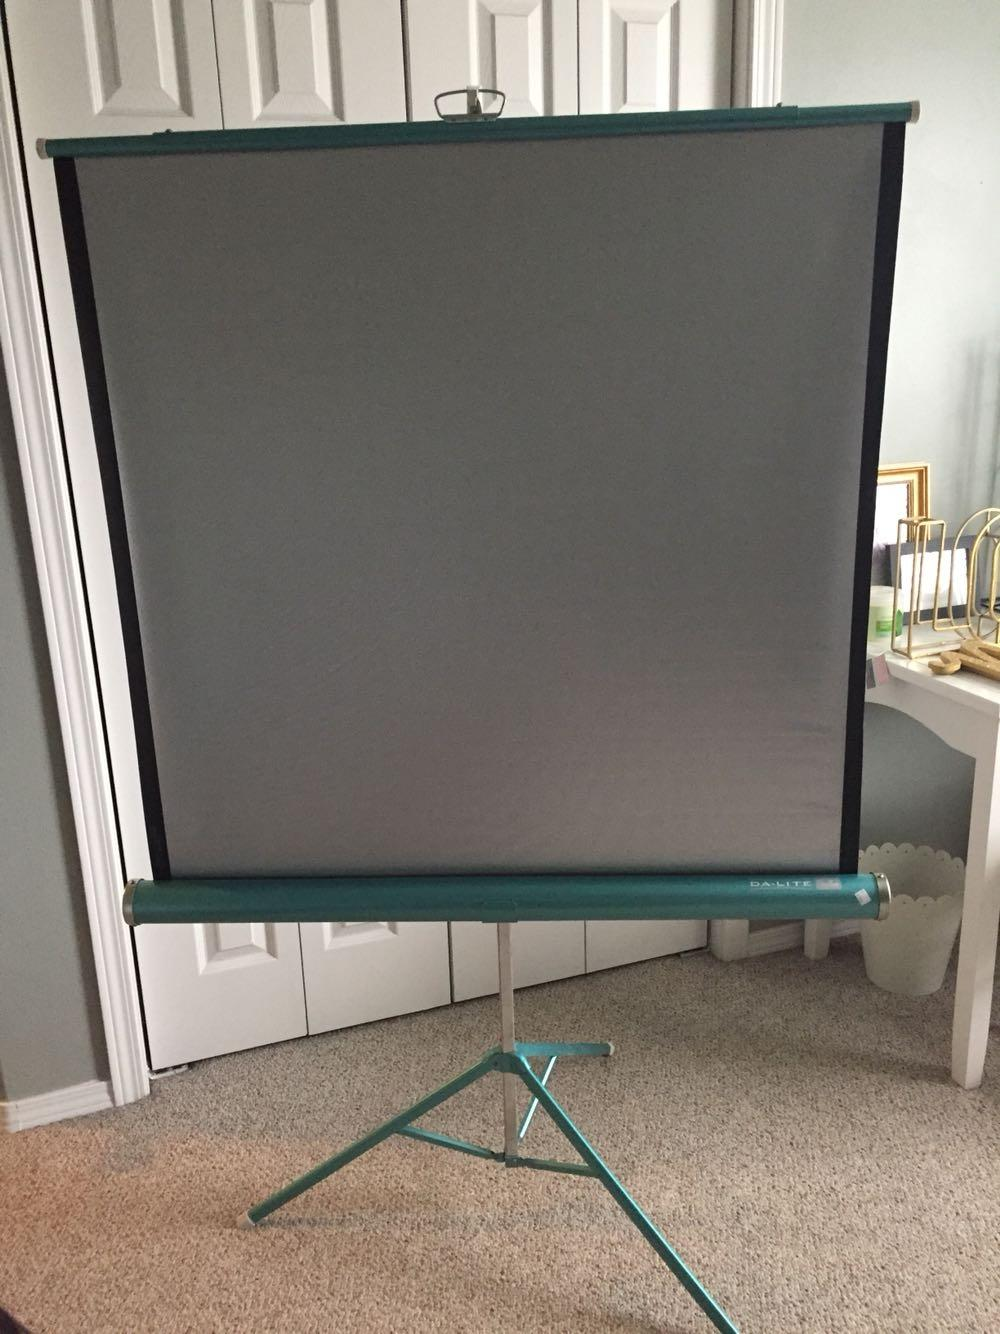 Vintage Portable Screen : Find more vintage portable screen for sale at up to off